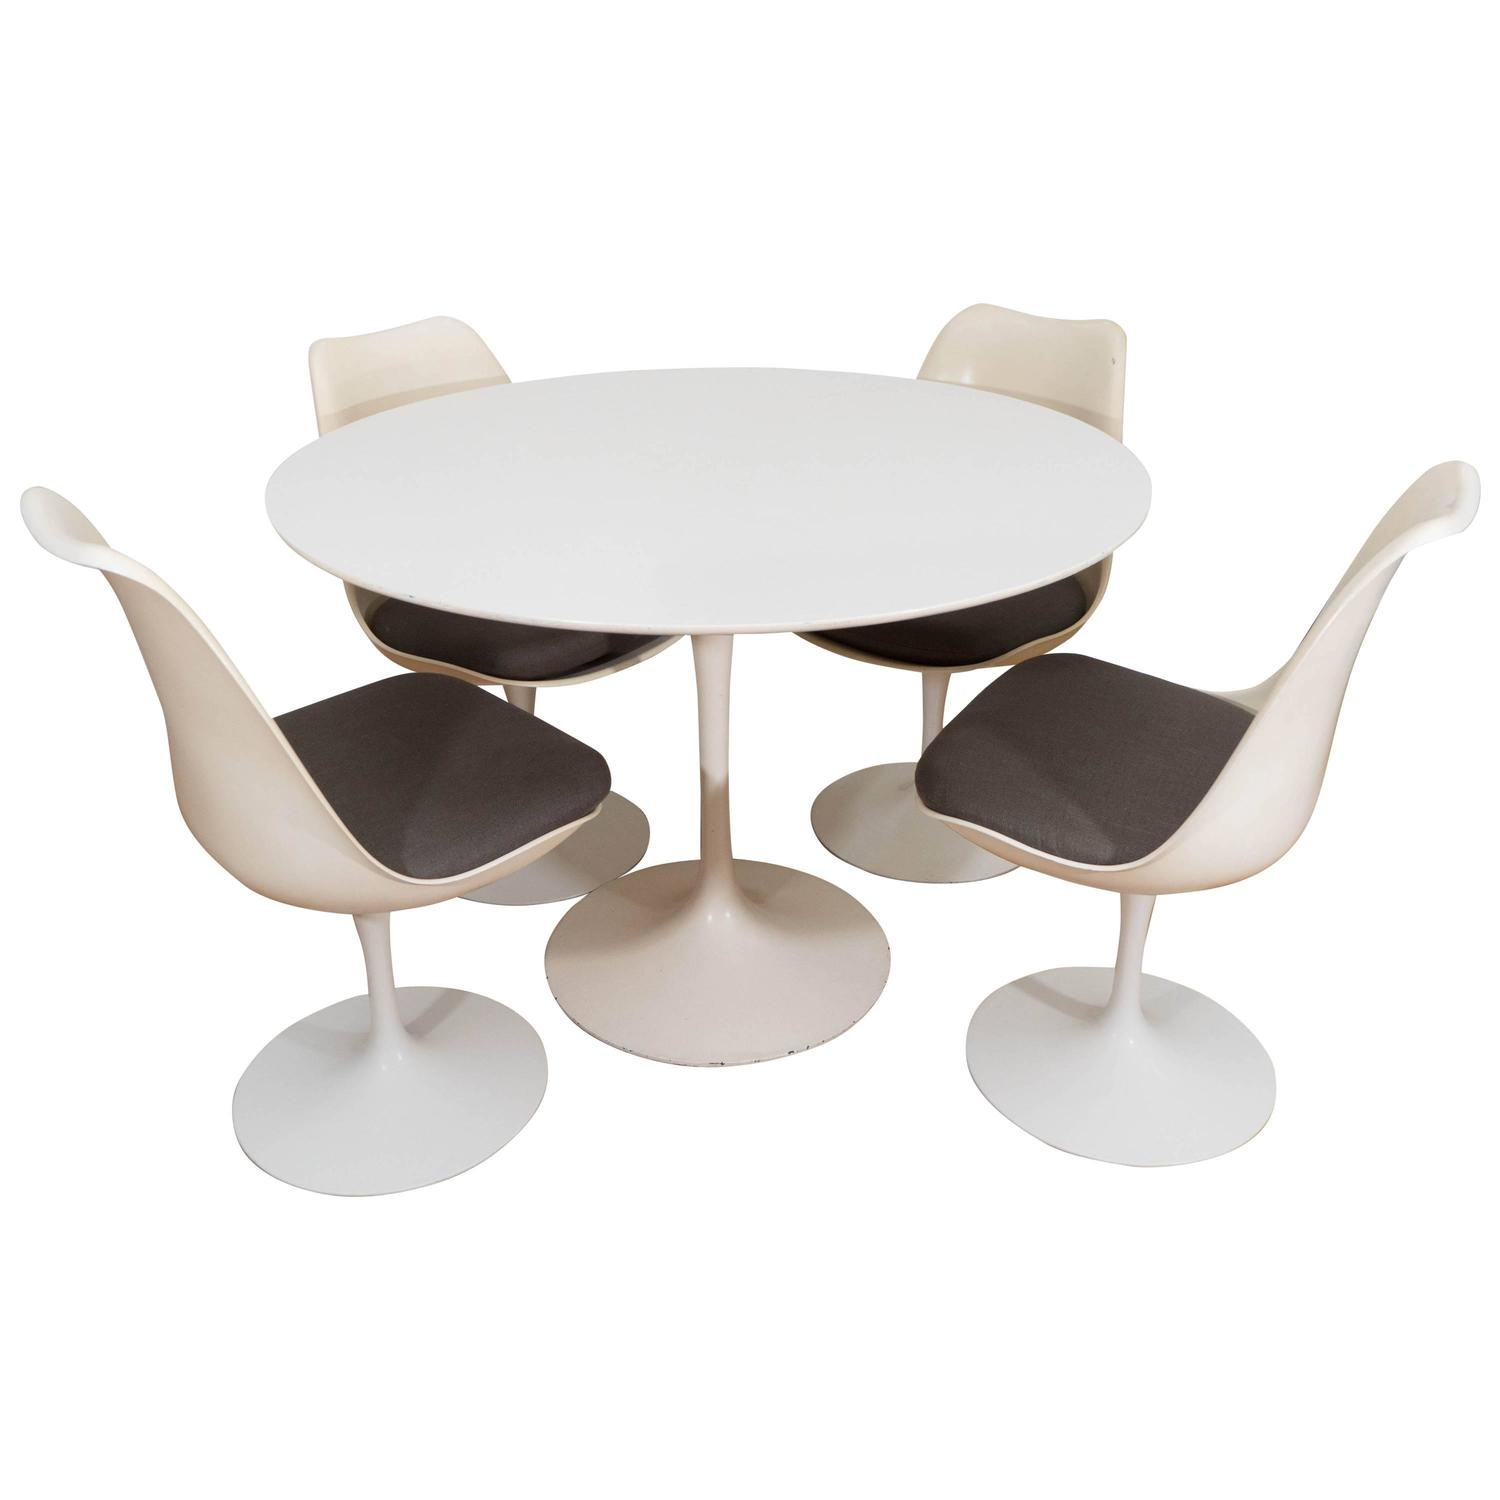 Eero Saarinen Set of Four Tulip Chairs and Table for Knoll